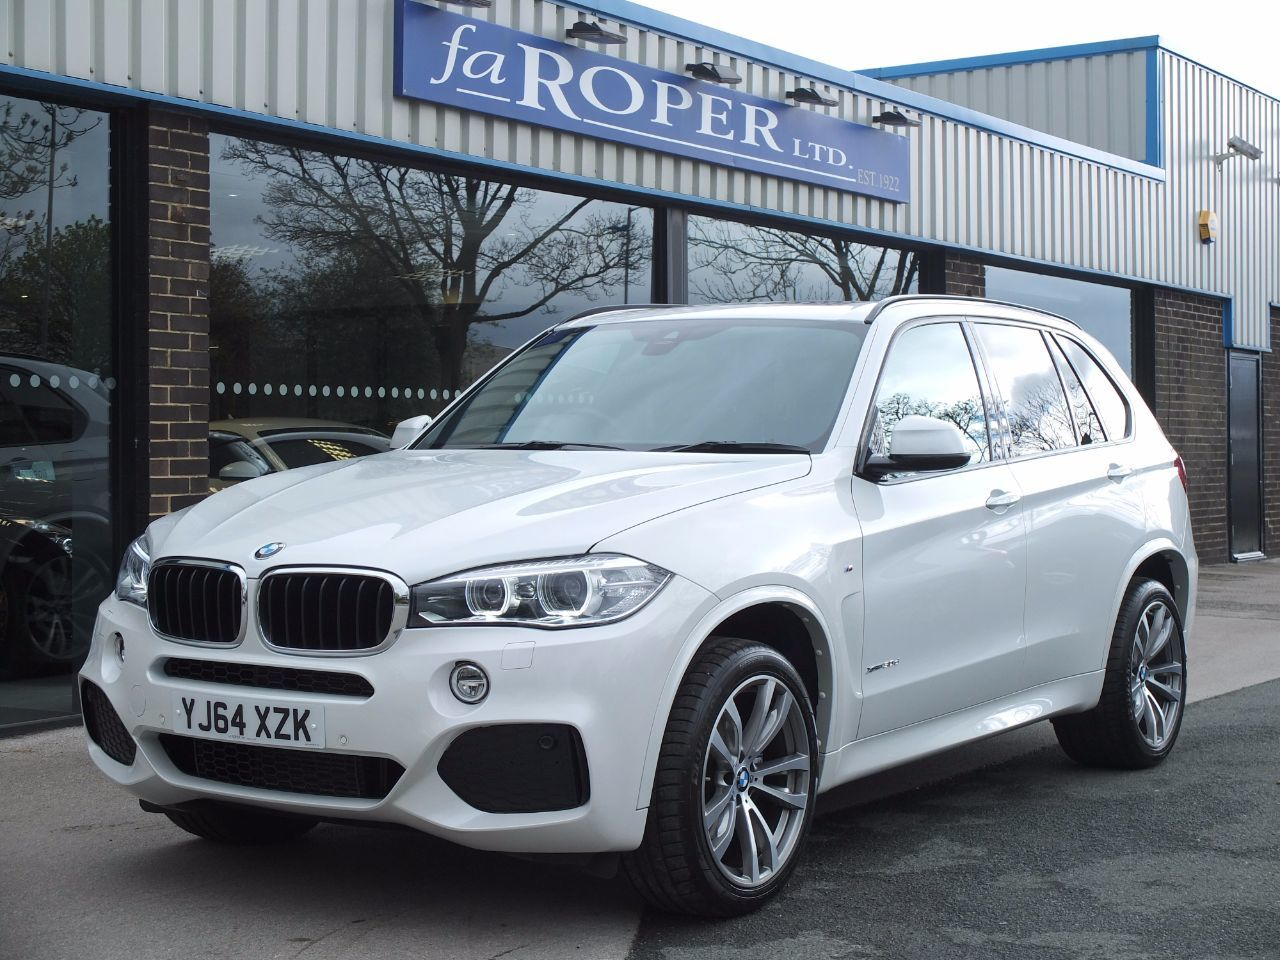 second hand bmw x5 xdrive30d m sport auto 7 seat pan roof spec for sale in bradford west. Black Bedroom Furniture Sets. Home Design Ideas